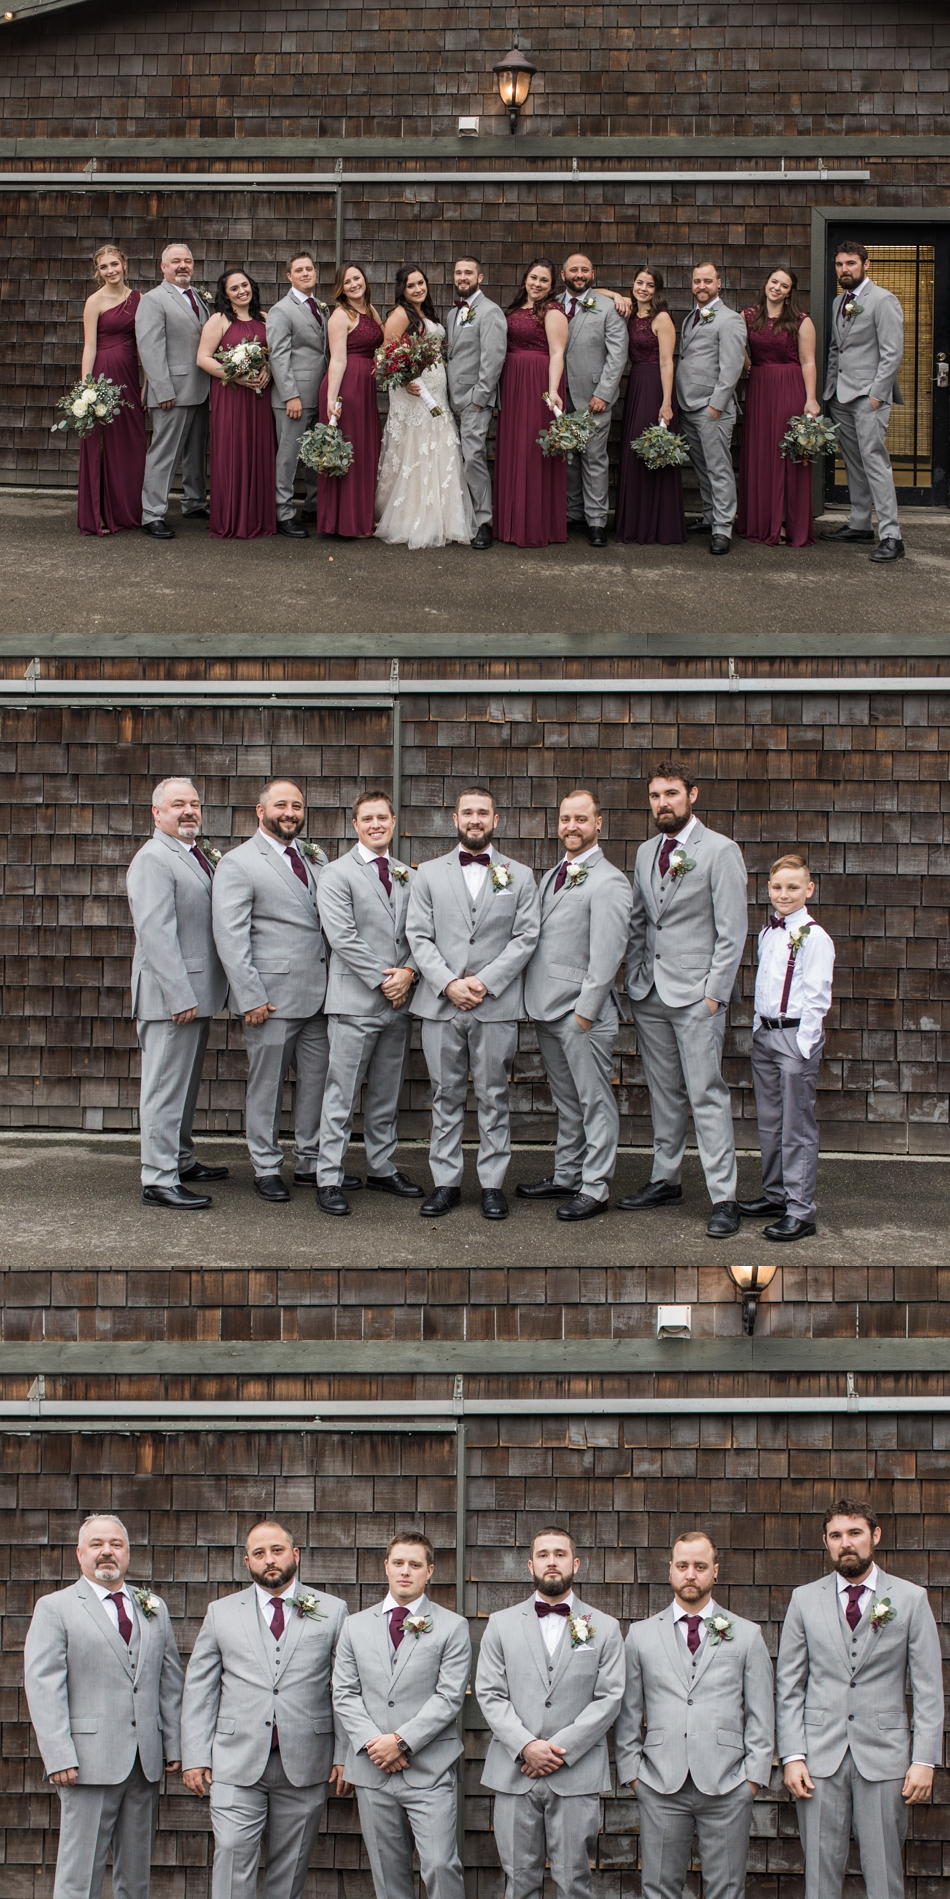 A photo of a groom and his groomsmen before his winter wedding at Hidden Meadows in Snohomish, a wedding venue near Seattle, WA. | Joanna Monger Photography | Snohomish & Seattle Wedding Photographer